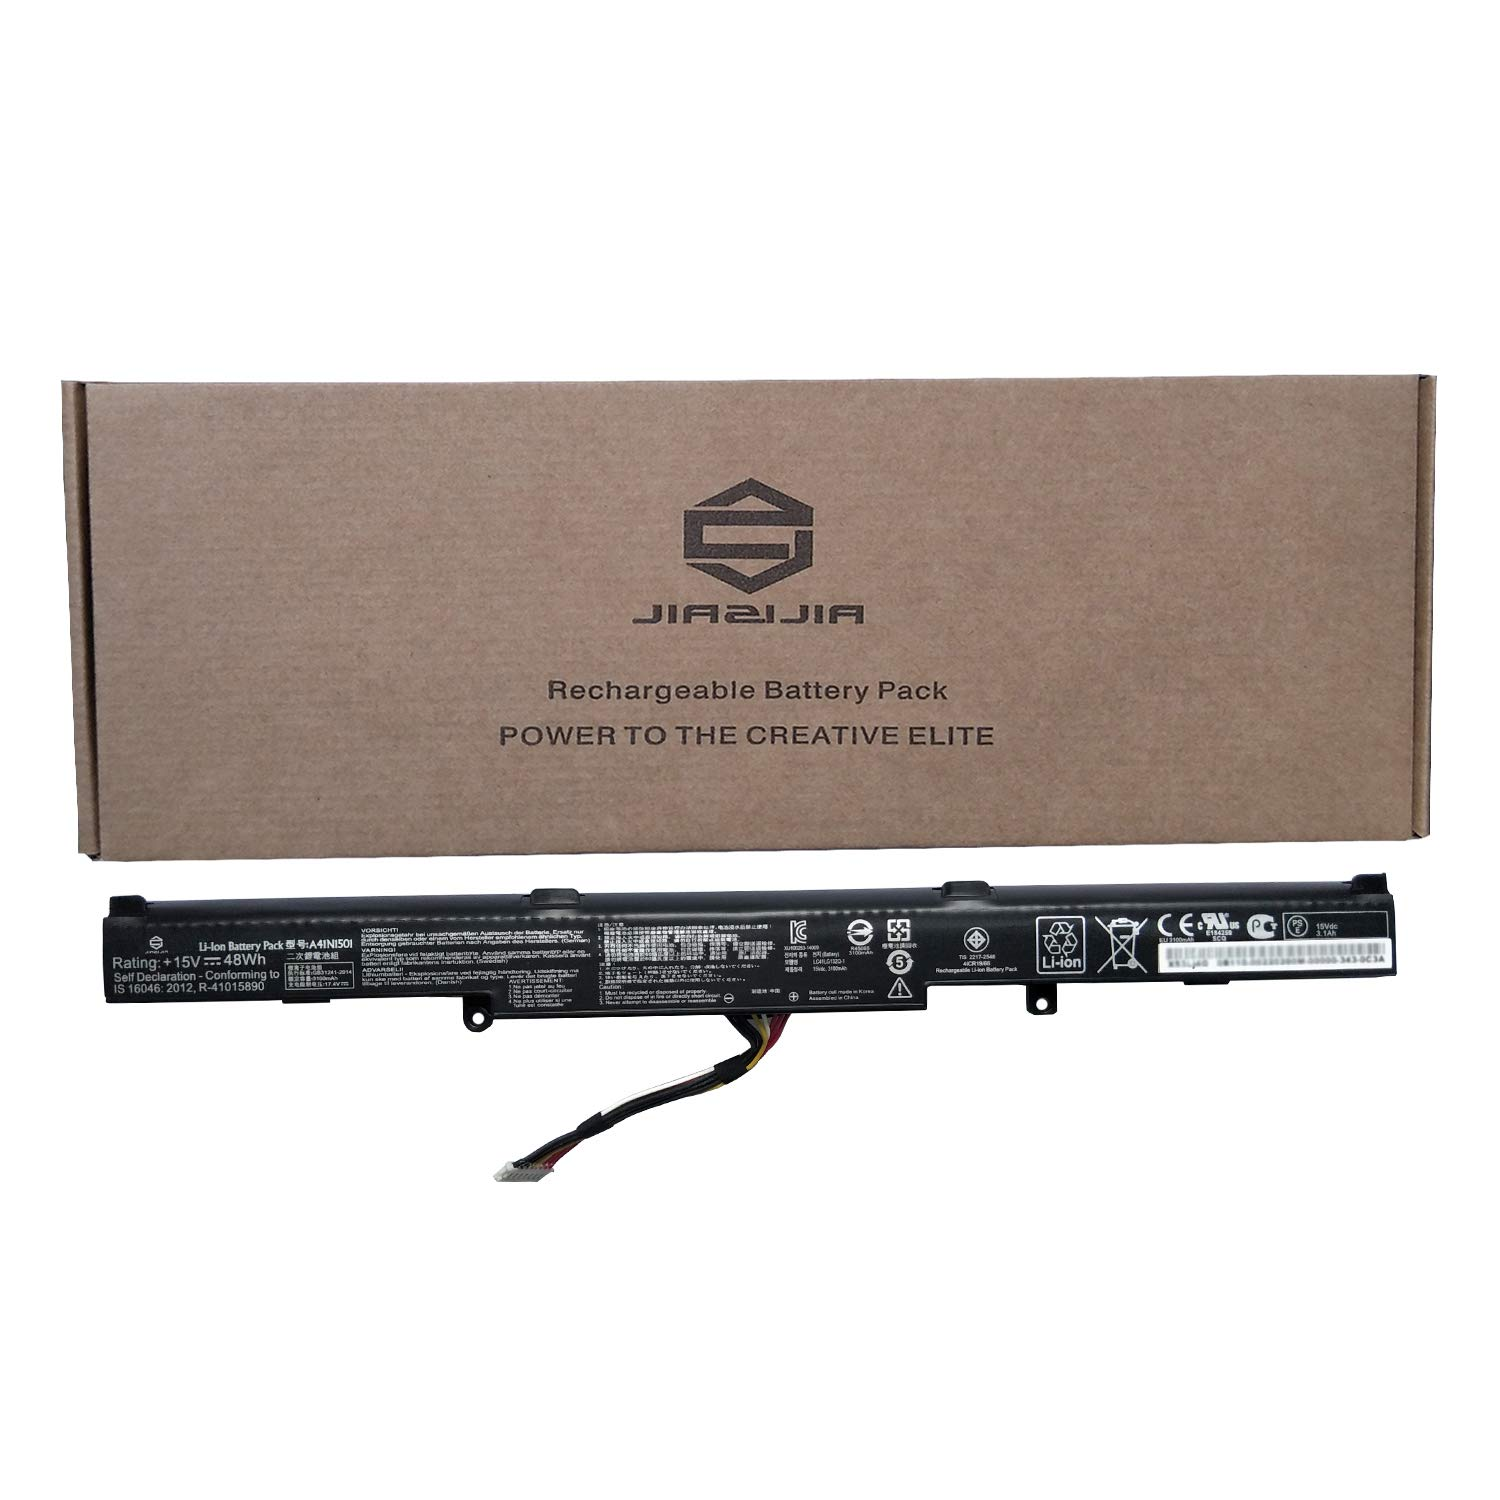 JIAZIJIA A41N1501 Laptop Battery Replacement for Asus Rog G752VW GL752 GL752V GL752VLM GL752VW GL752VWM N552V N552VW N552VX N752 N752V N752VW N752VX Series A41LK9H 15V 48Wh 3100mAh 4-Cell